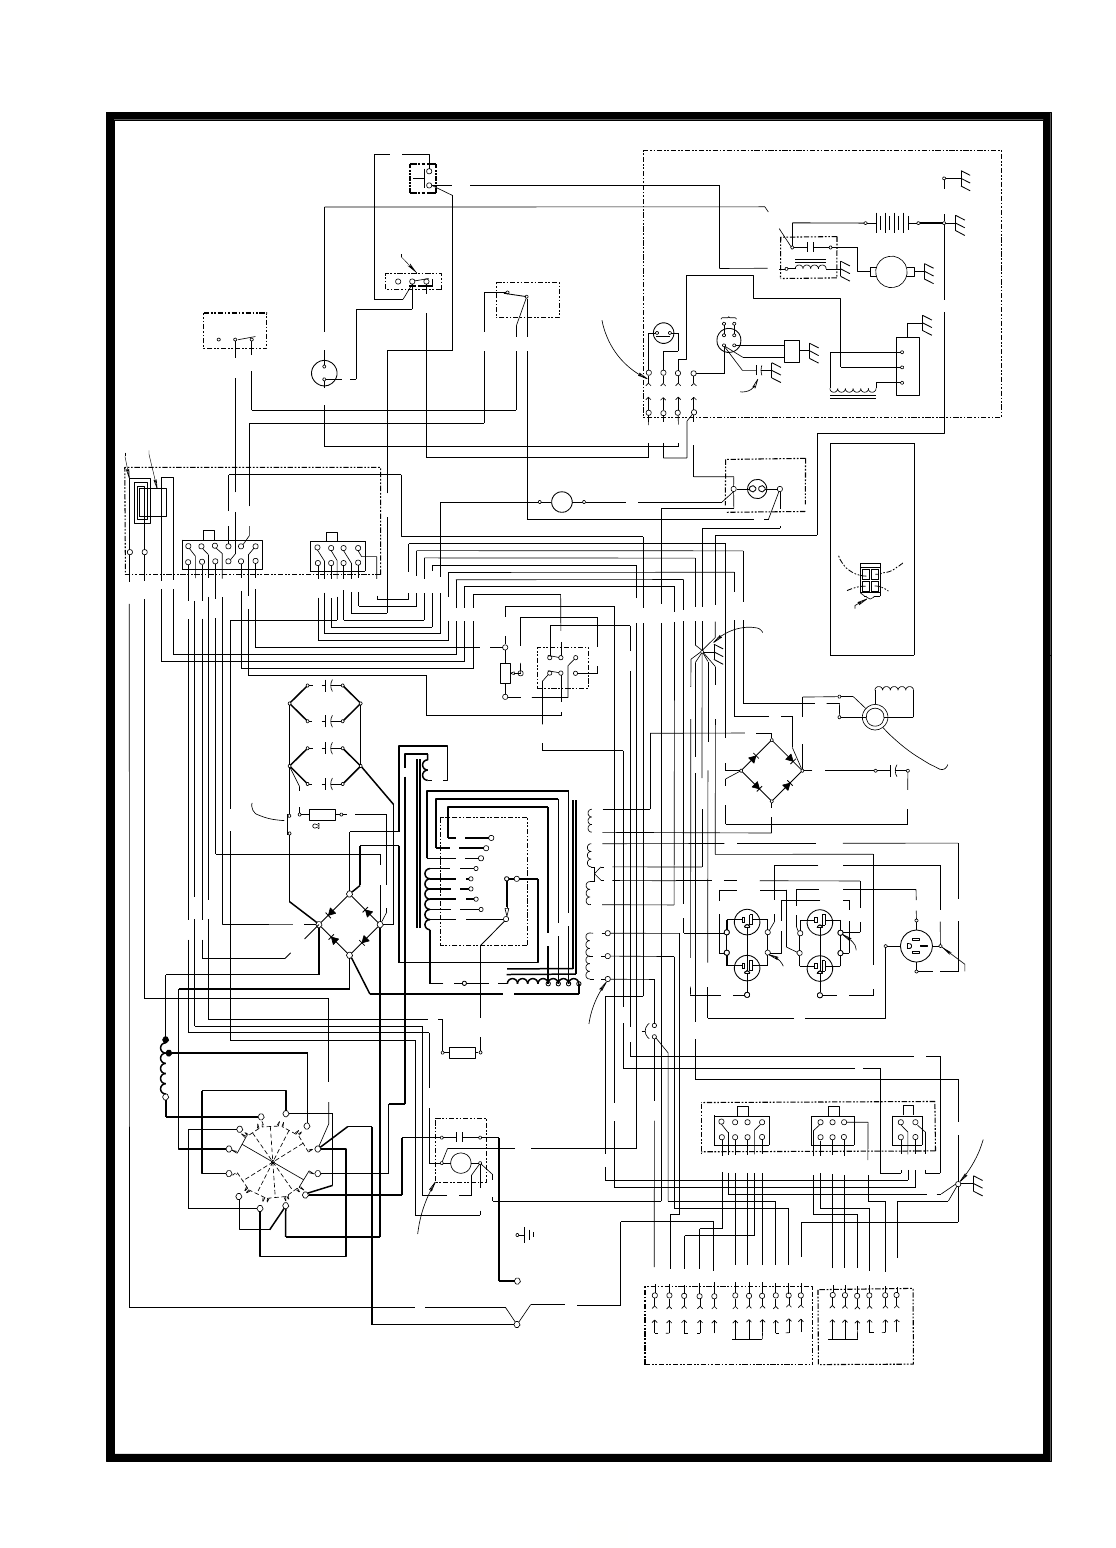 Amphenol Wiring Diagram Lincoln Electric Im511 D Ranger 9 Onan Wiring Diagram